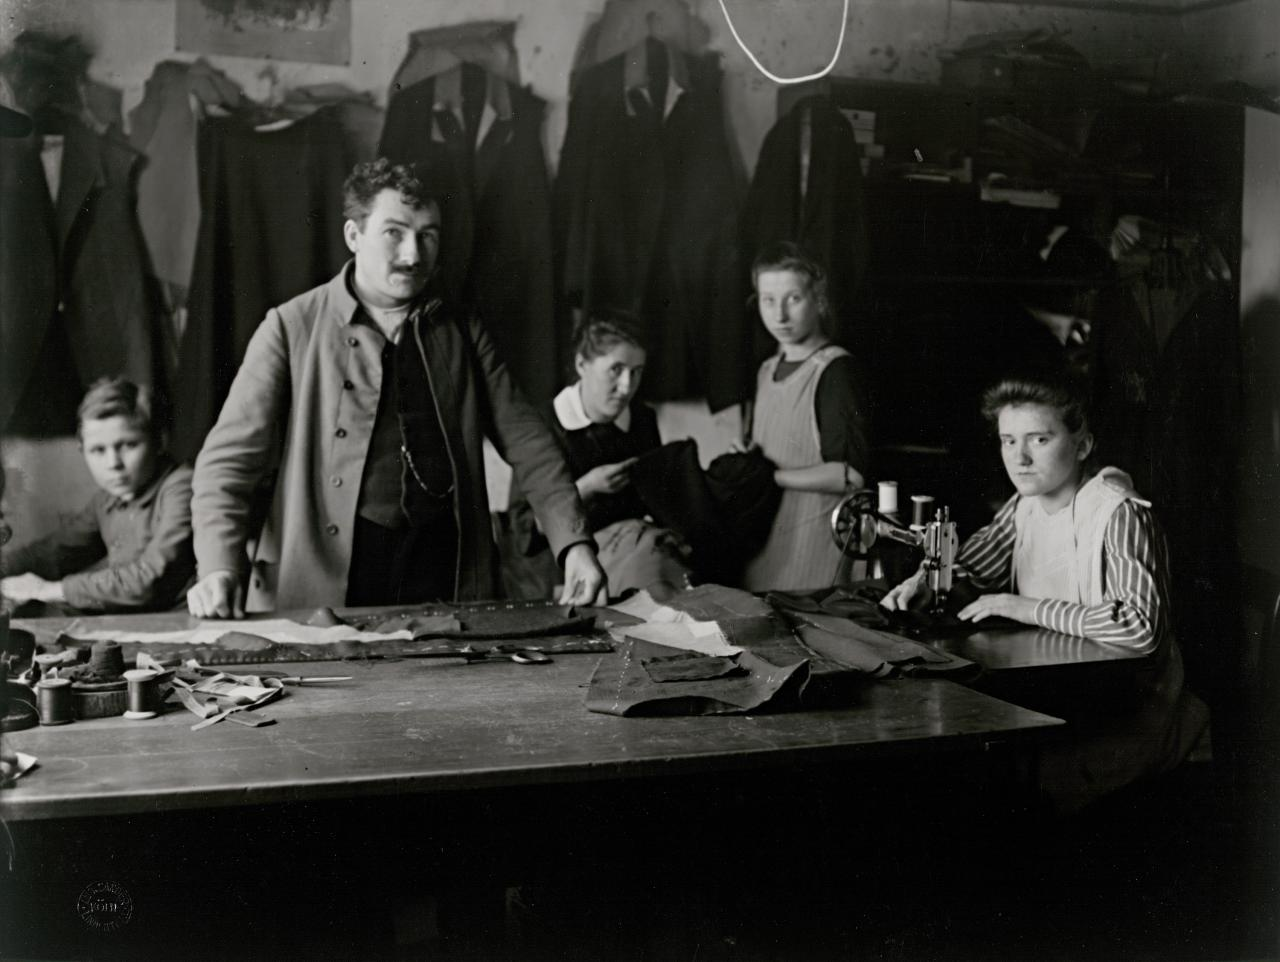 Tailor with assistants, Westerwald, 1924